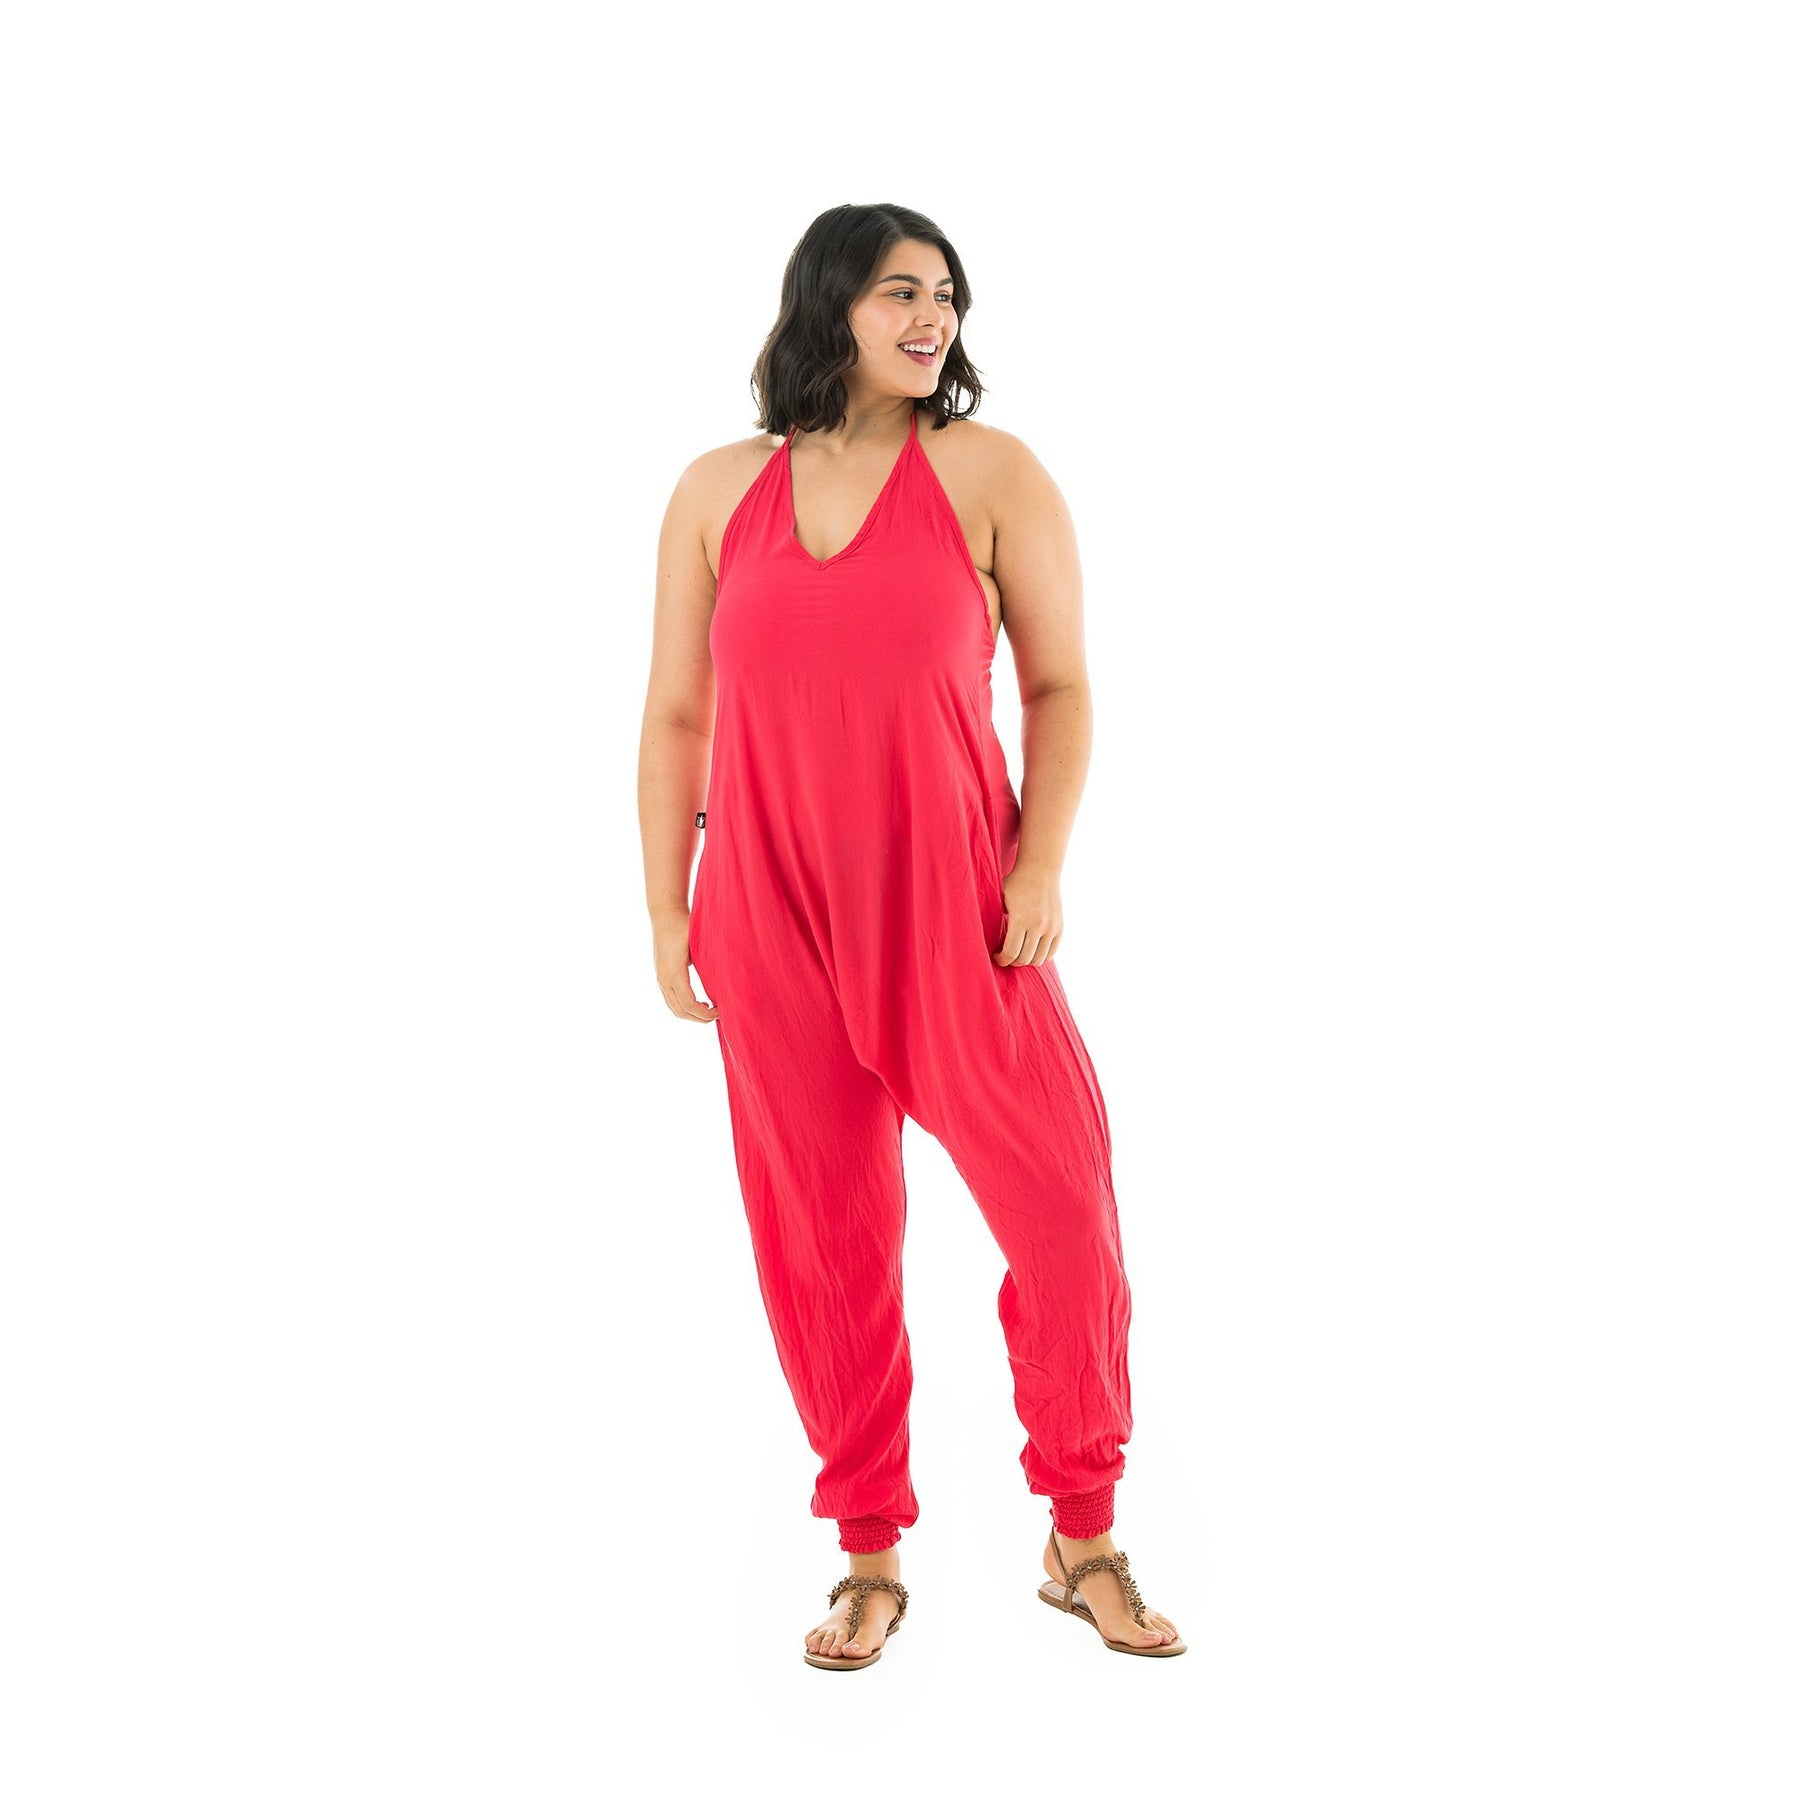 Yoga Jumpsuit Hippie Gifts for Mom from Daughter Free Size Harem Jumpsuit Women Fits sizes XS-XL Mothers Day Gift for Yoga Lover